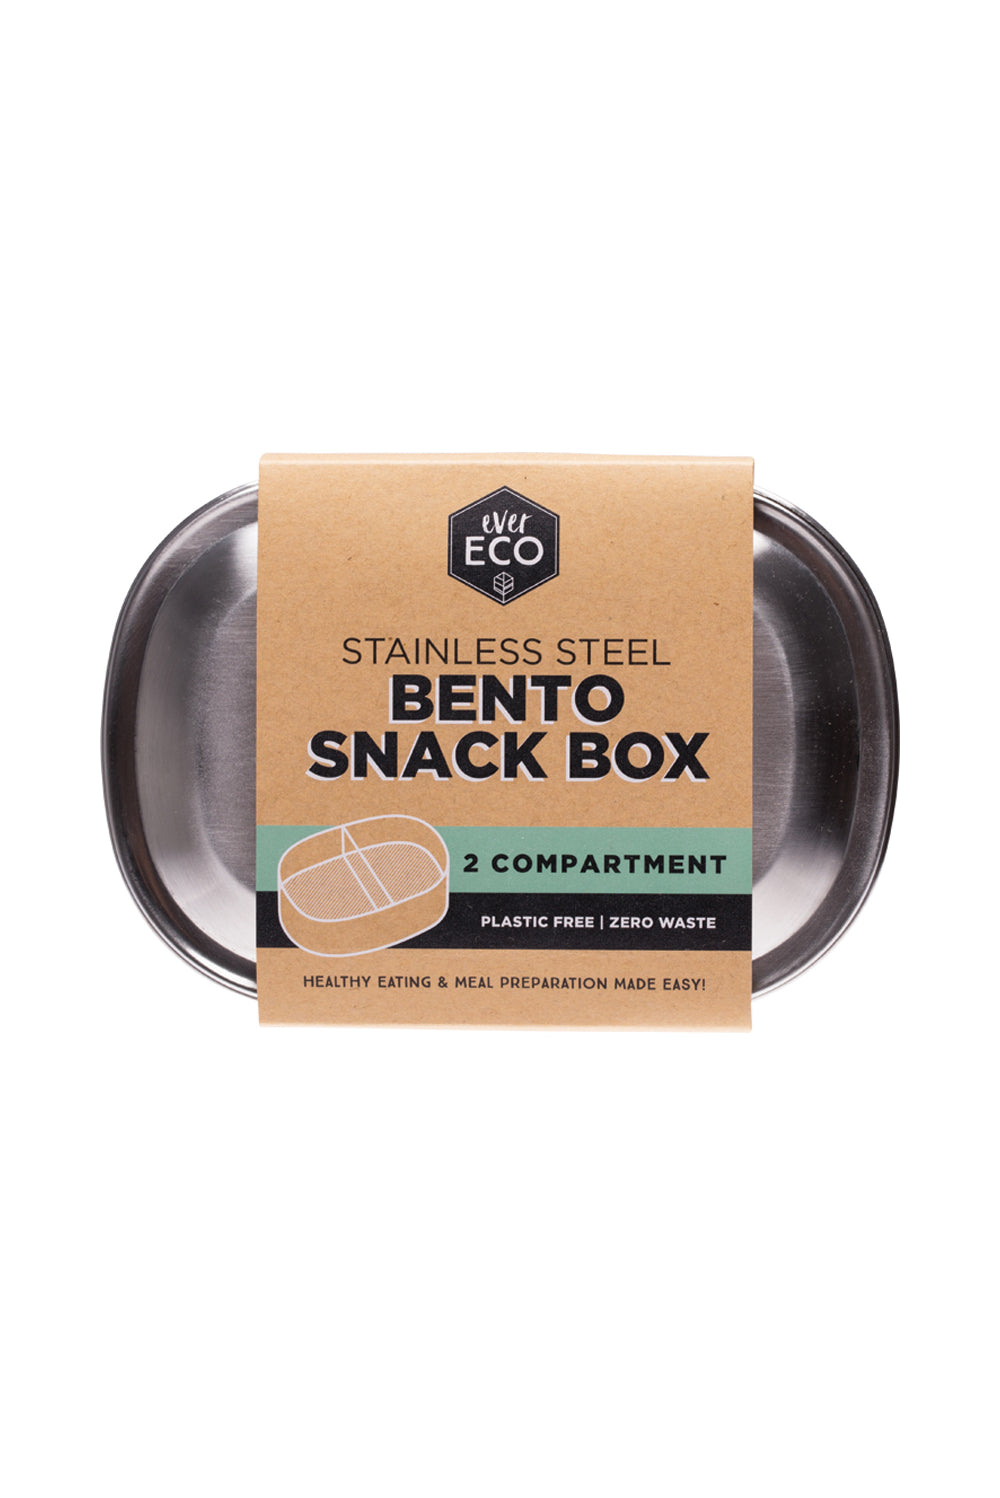 Ever Eco | Bento snack box 2 compartment | Plastic Free Living | Environmentally Friendly Homewares